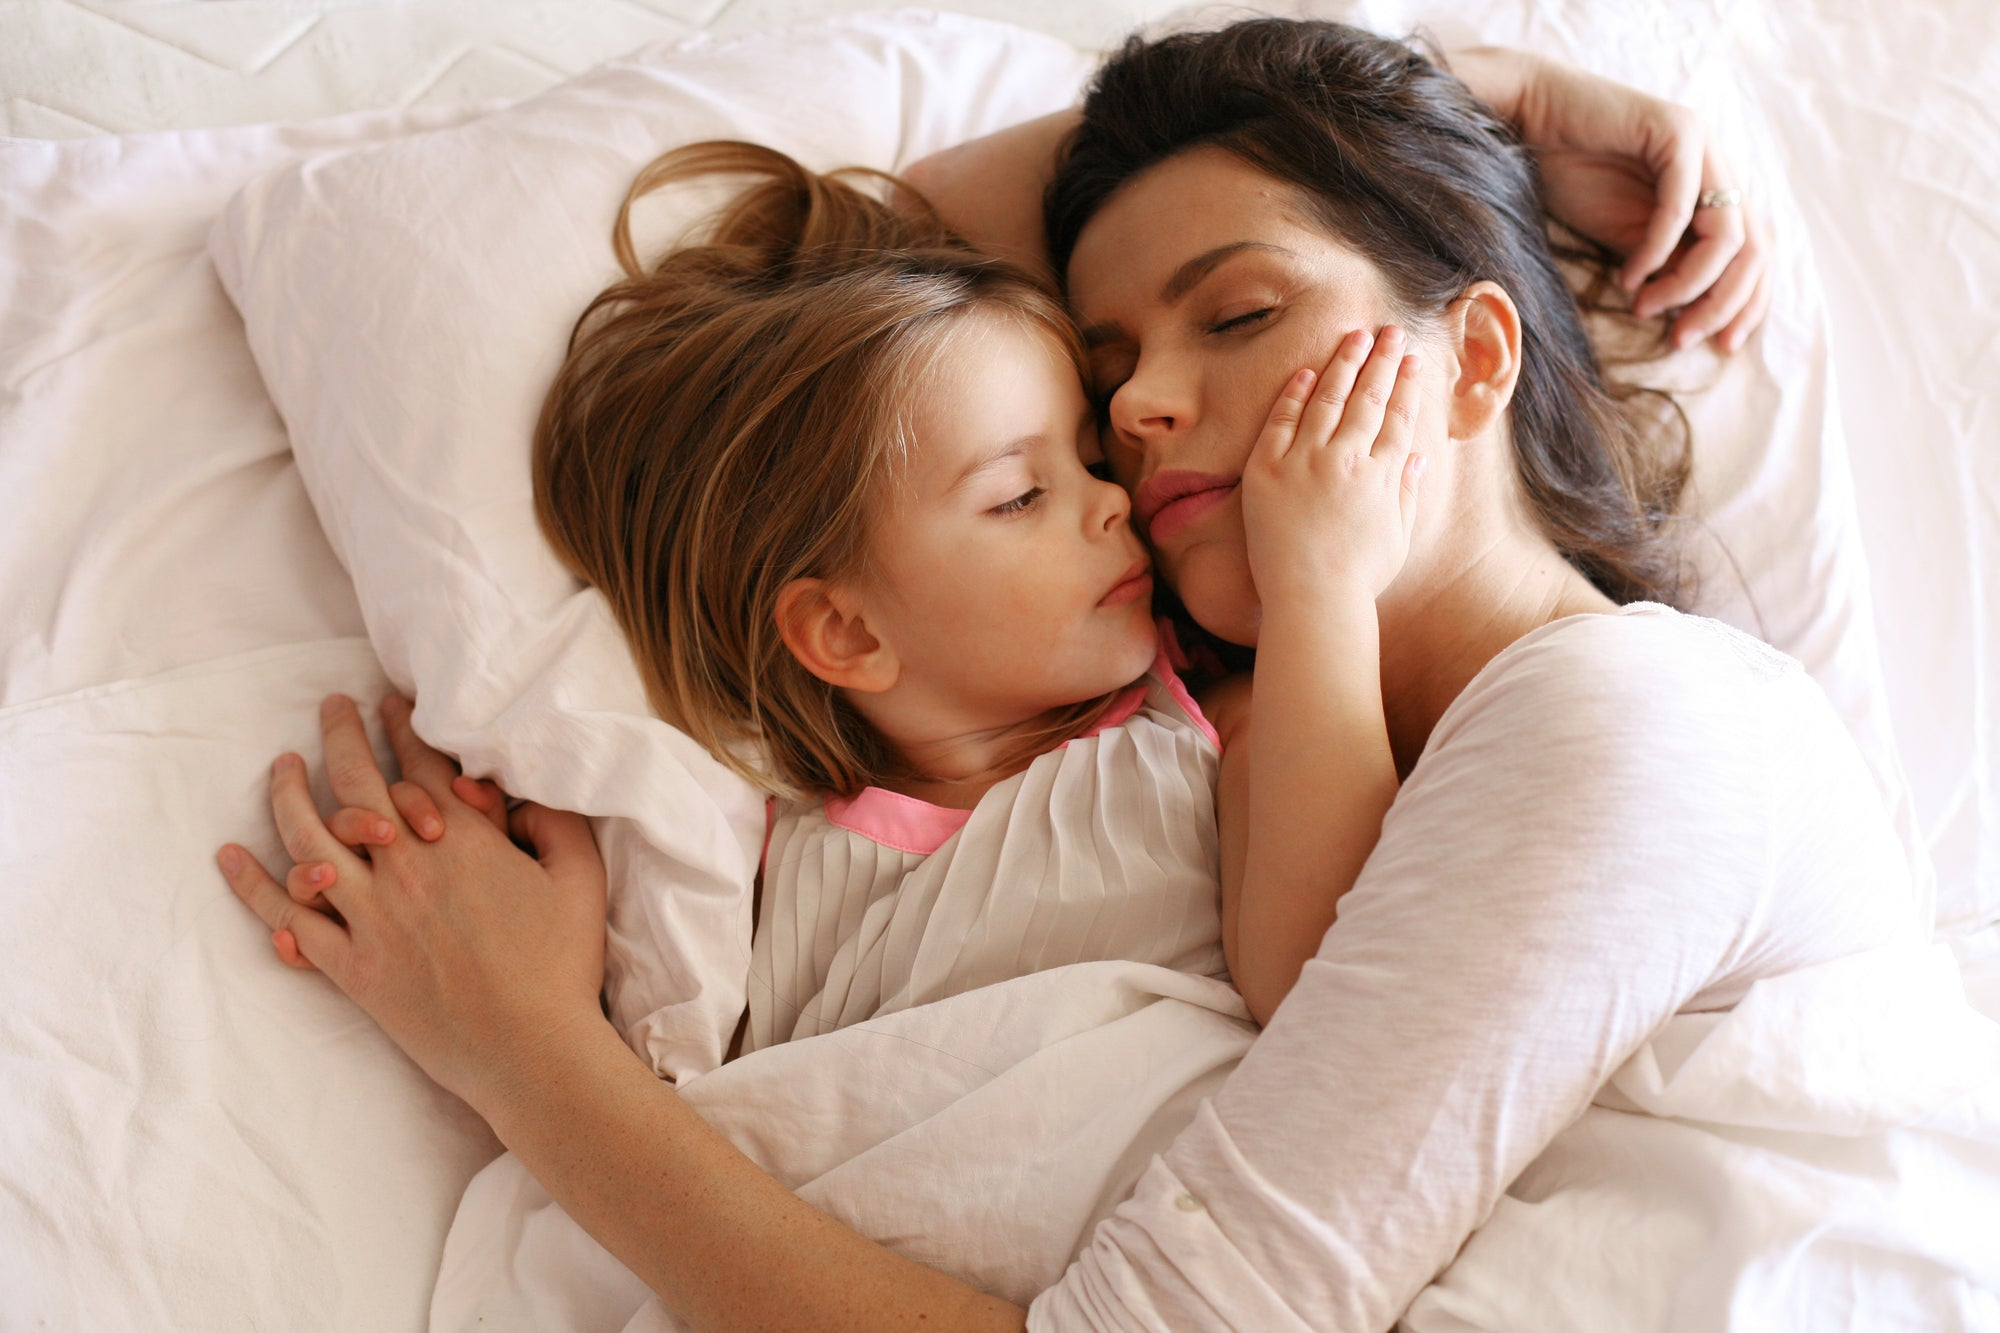 Mothers Experience More Sleep Challenges Than Fathers, According To Our New Study